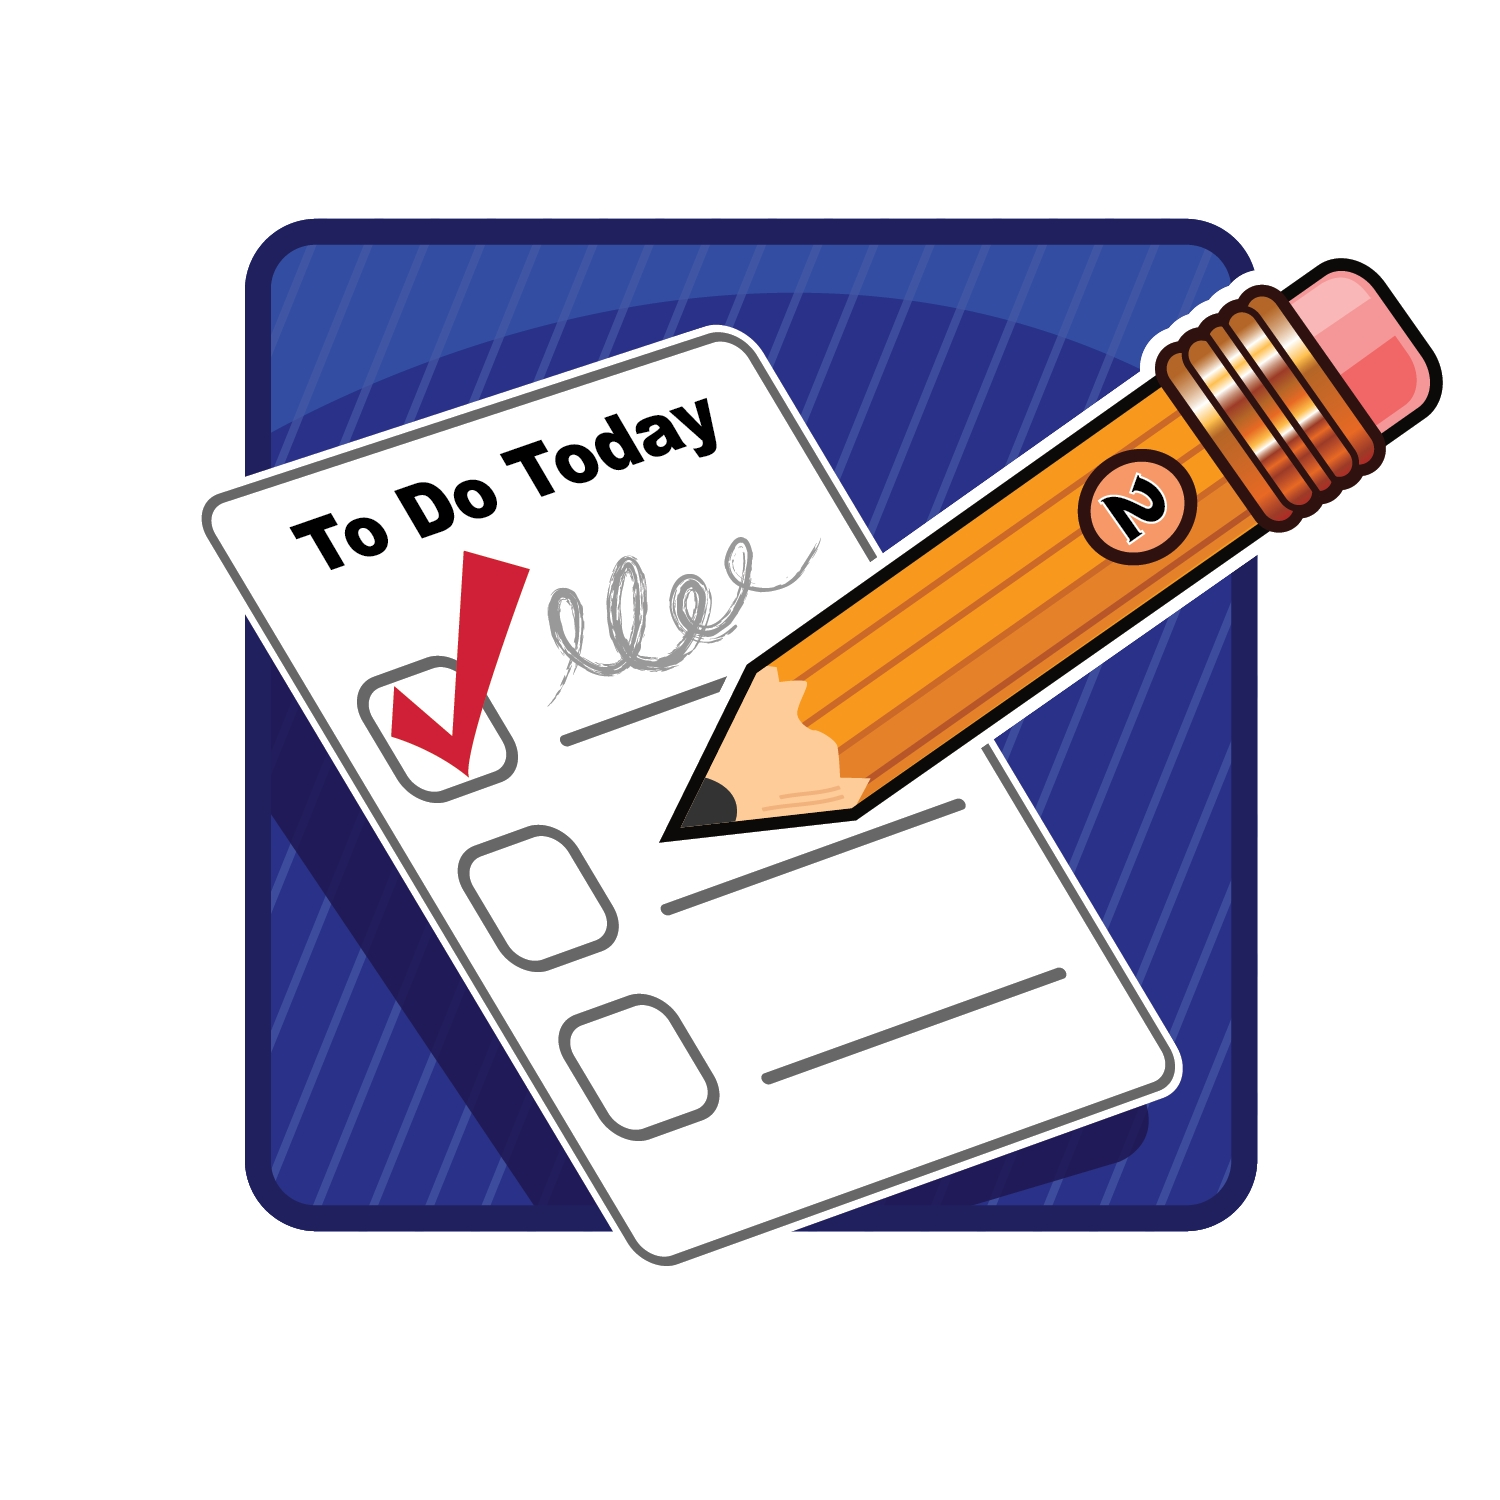 Checklist clipart thing. Things to do list